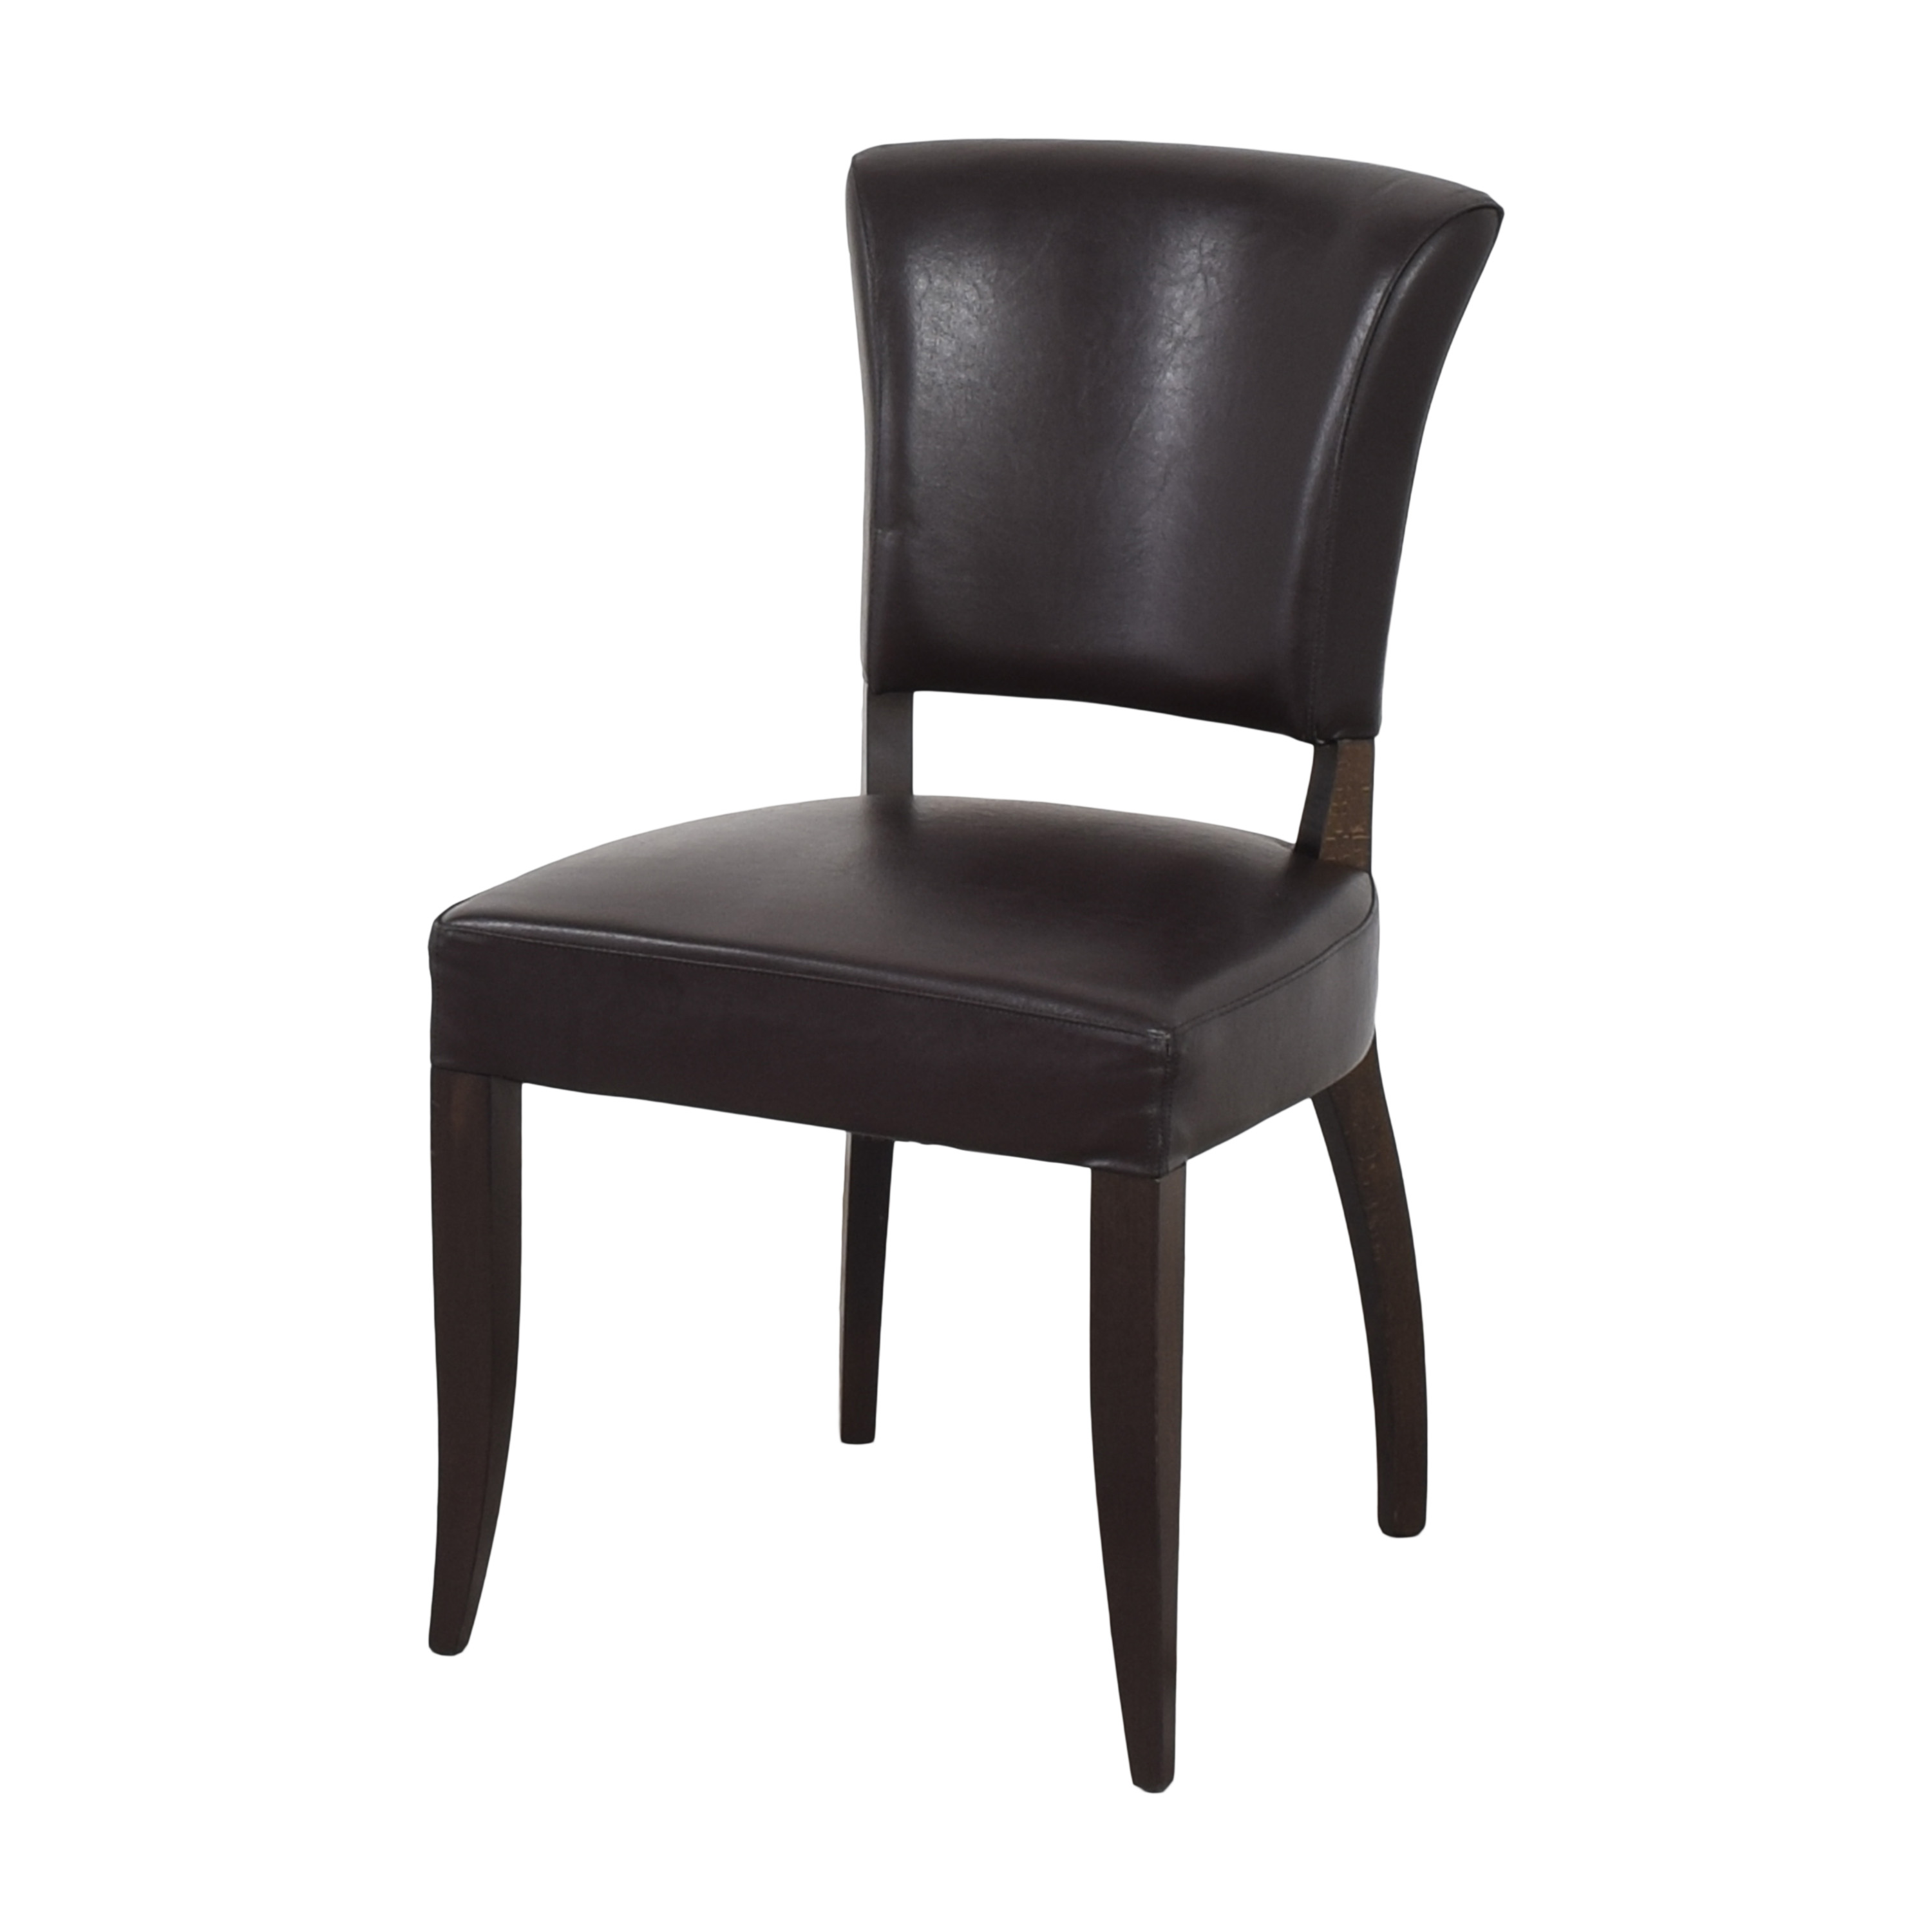 Crate & Barrel Crate & Barrel Side Dining Chairs